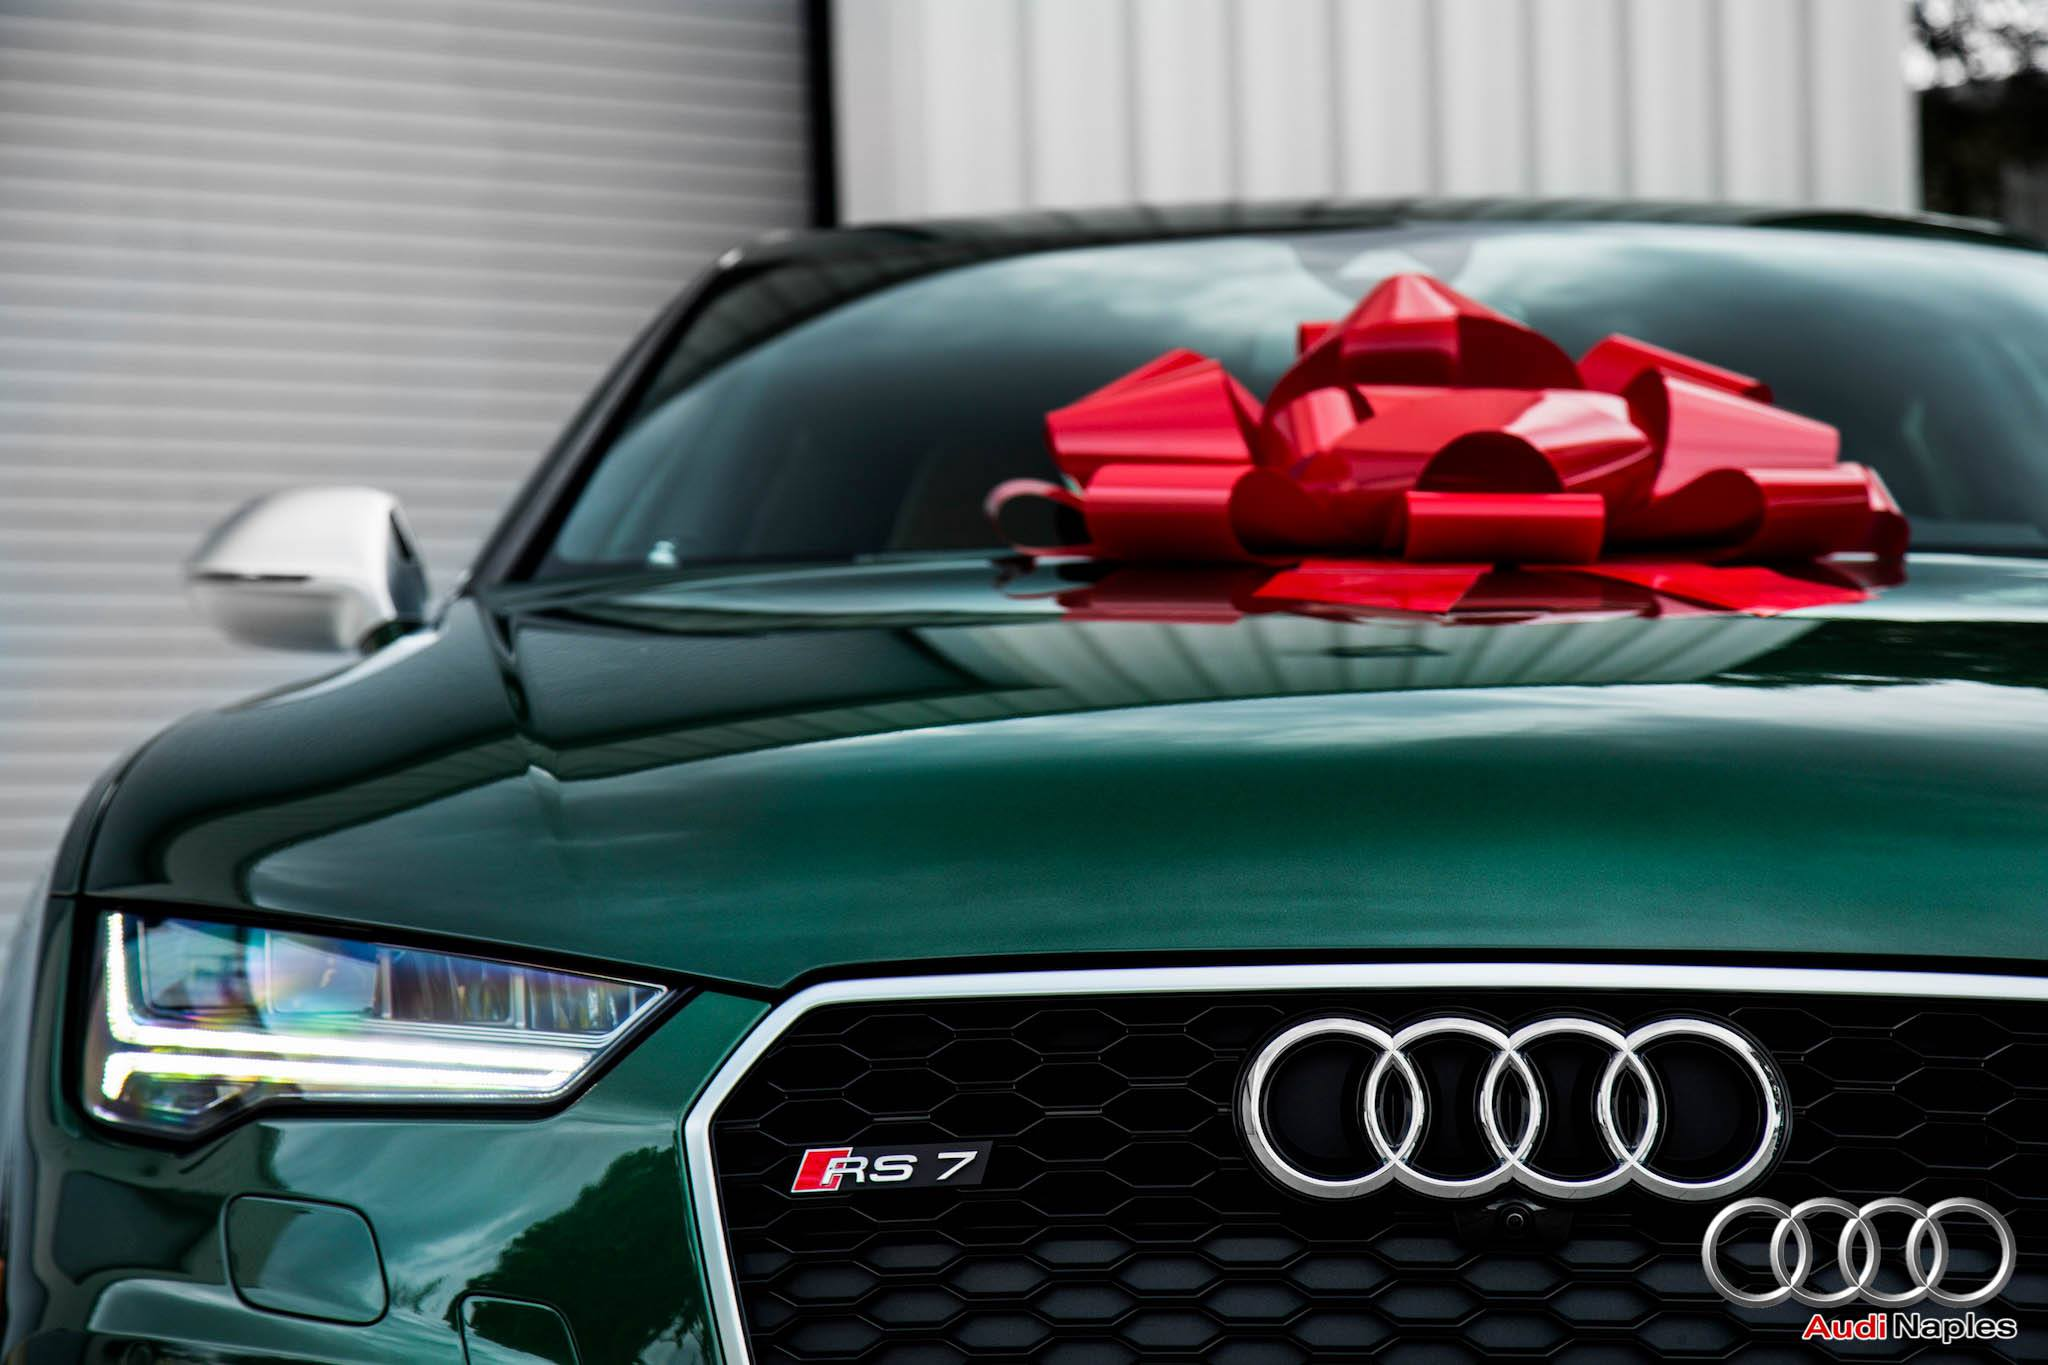 2016 Audi RS7 in Verdant Green Looks like a Bentley ...